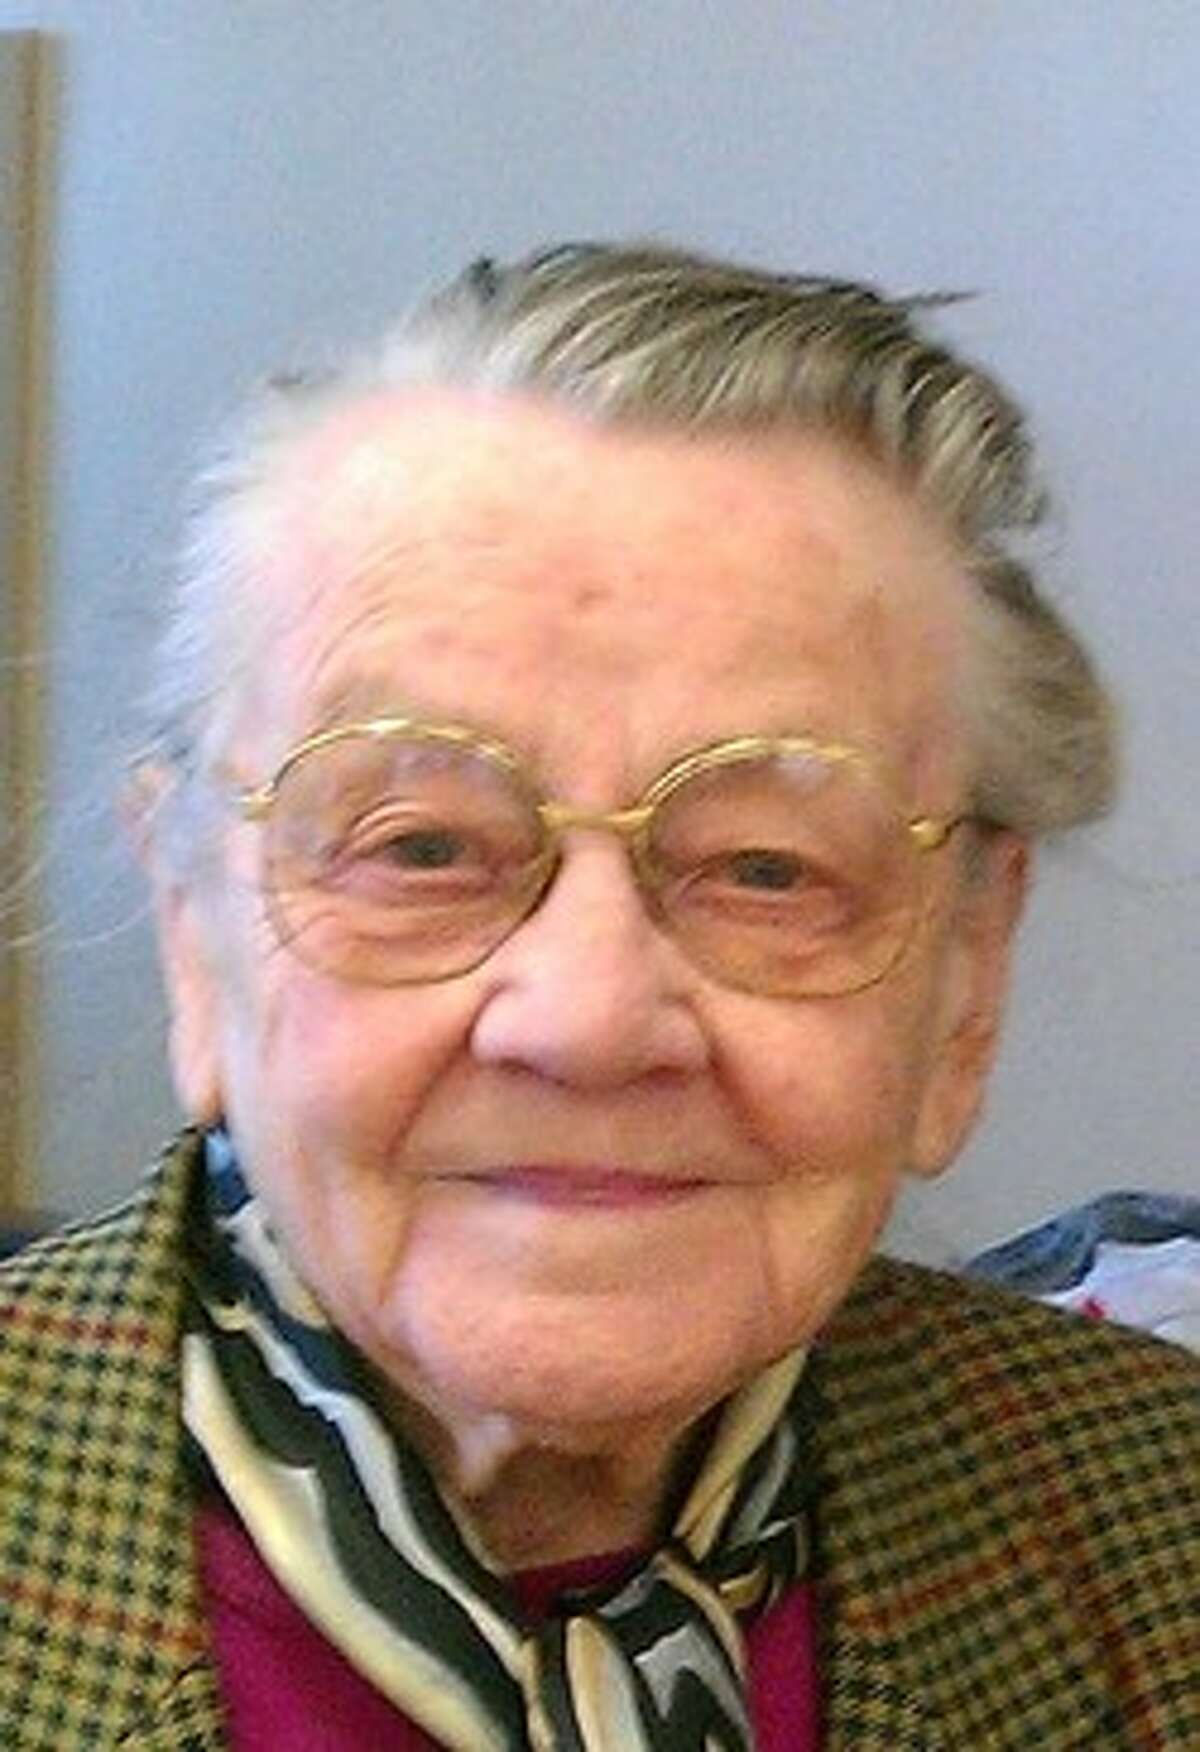 Maria F. Wehage Hoyer was detained in a camp with other German civilians after WWII.